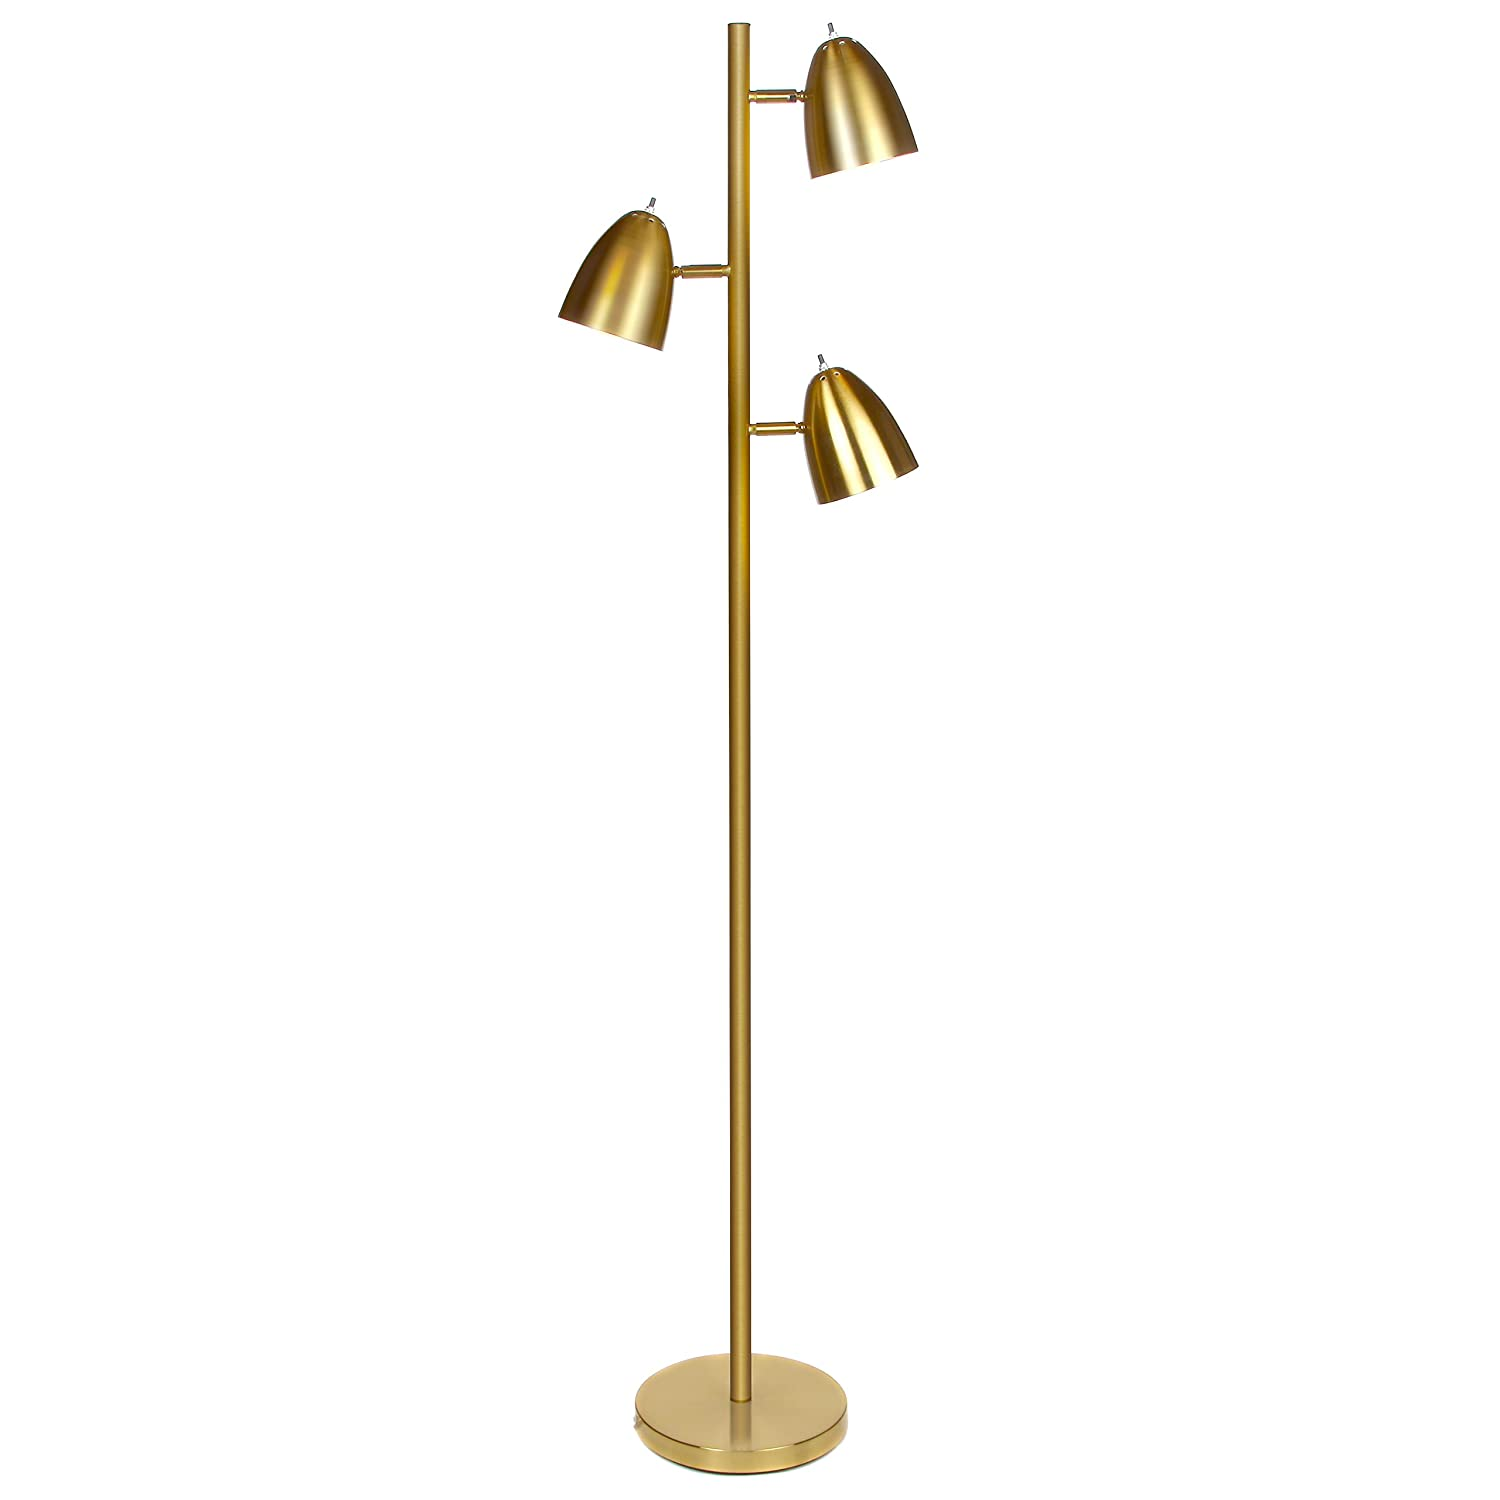 Brightech Jacob - LED Reading and Floor Lamp for Living Rooms & Bedrooms - Classy, Mid Century Modern Adjustable 3 Light Tree - Standing Tall Pole Lamp with 3 LED Bulbs - Antique Brass/Gold Brigthech BT-FL-JCB